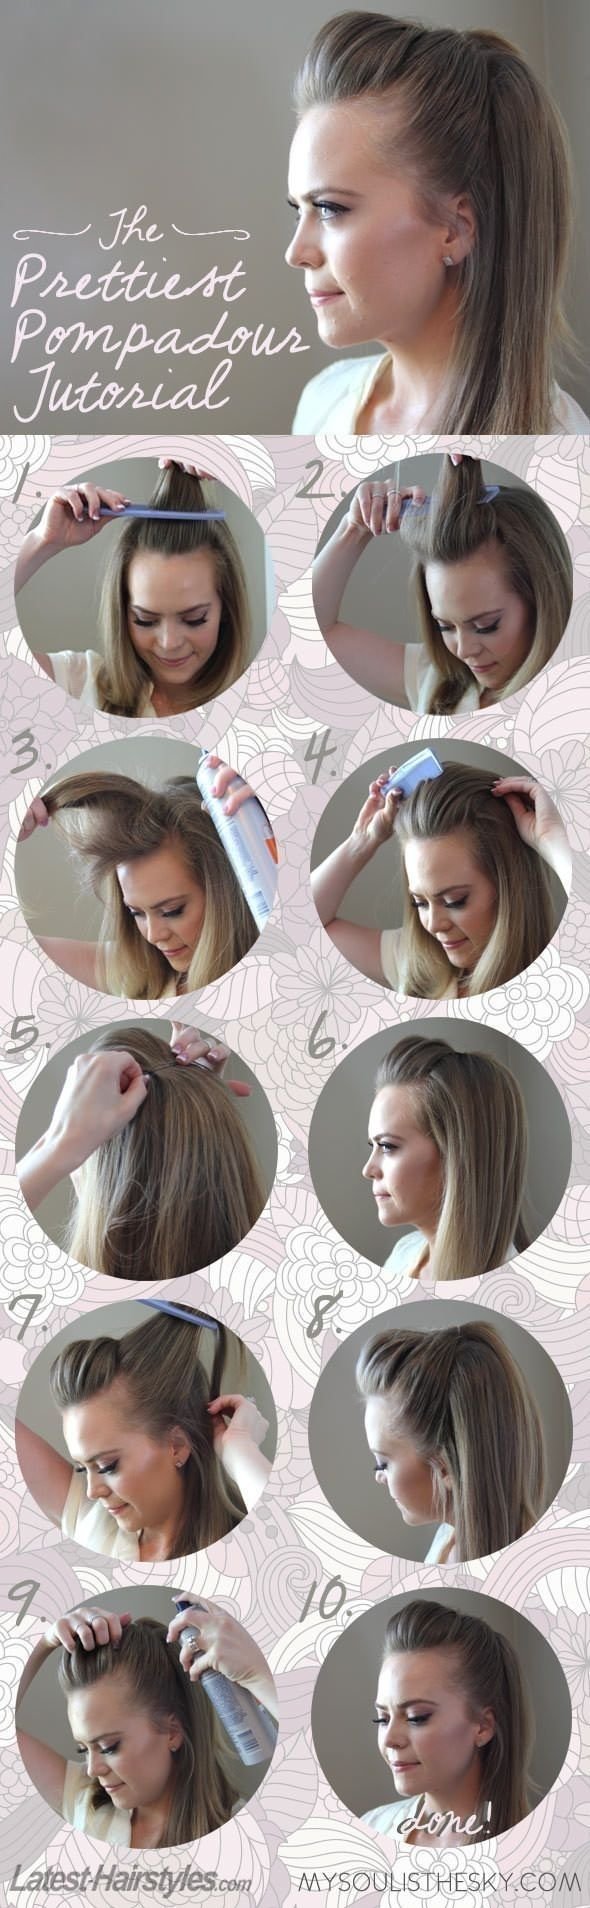 fiveminute hairstyles for busy mornings beauty all about hair